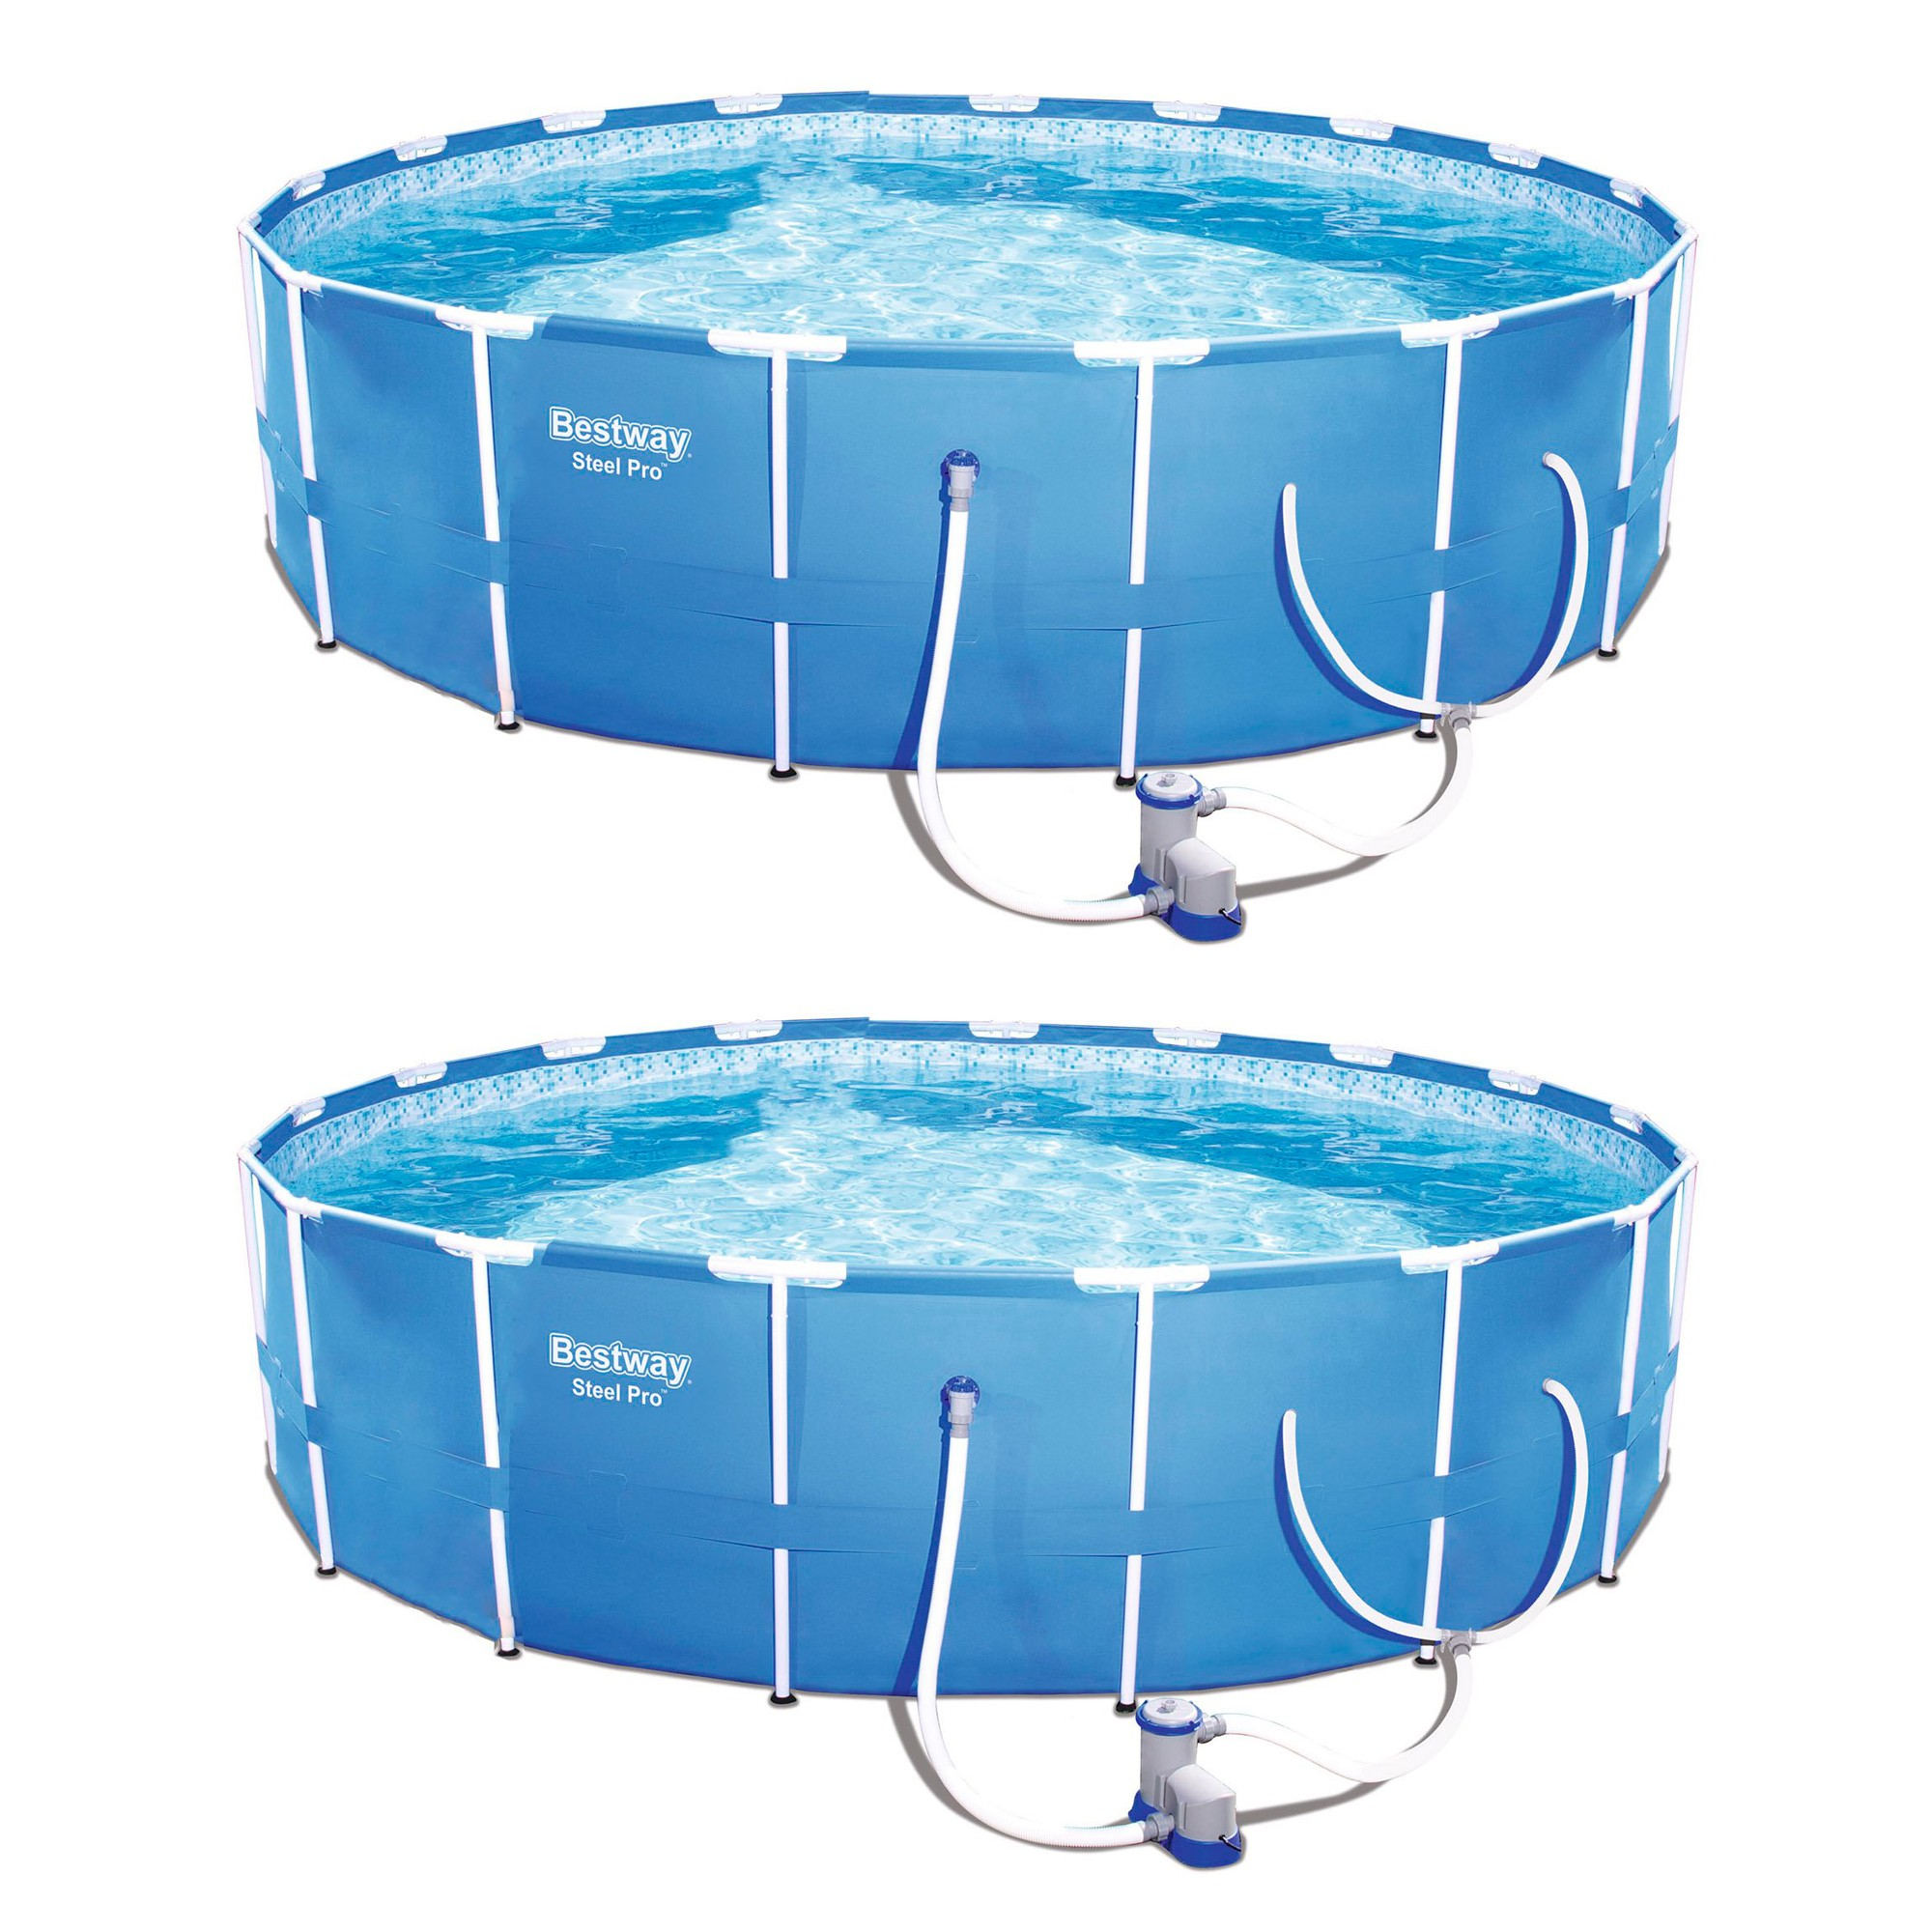 Bestway Steel Pro 12 X 30 Frame Above Ground Pool Set W Filter Pump 2 Pack In Ground Pools Bestway Above Ground Pool